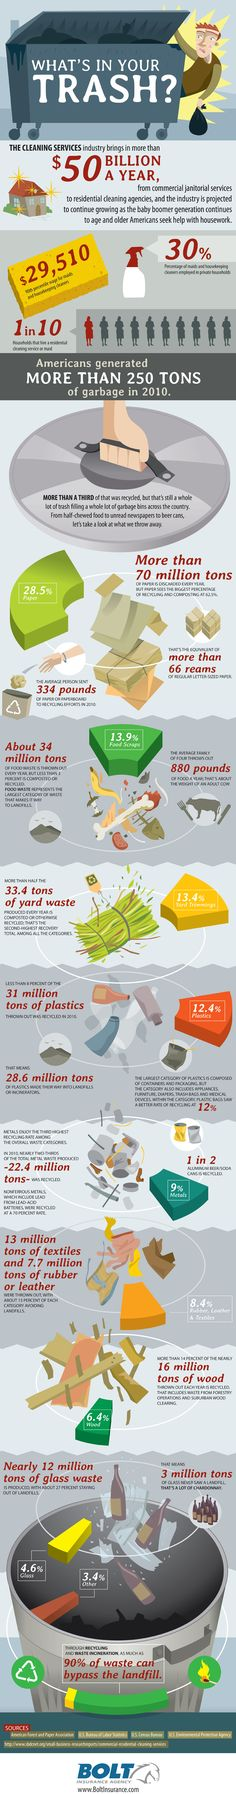 whats-in-your-trash-infographic.jpg (800×6082)